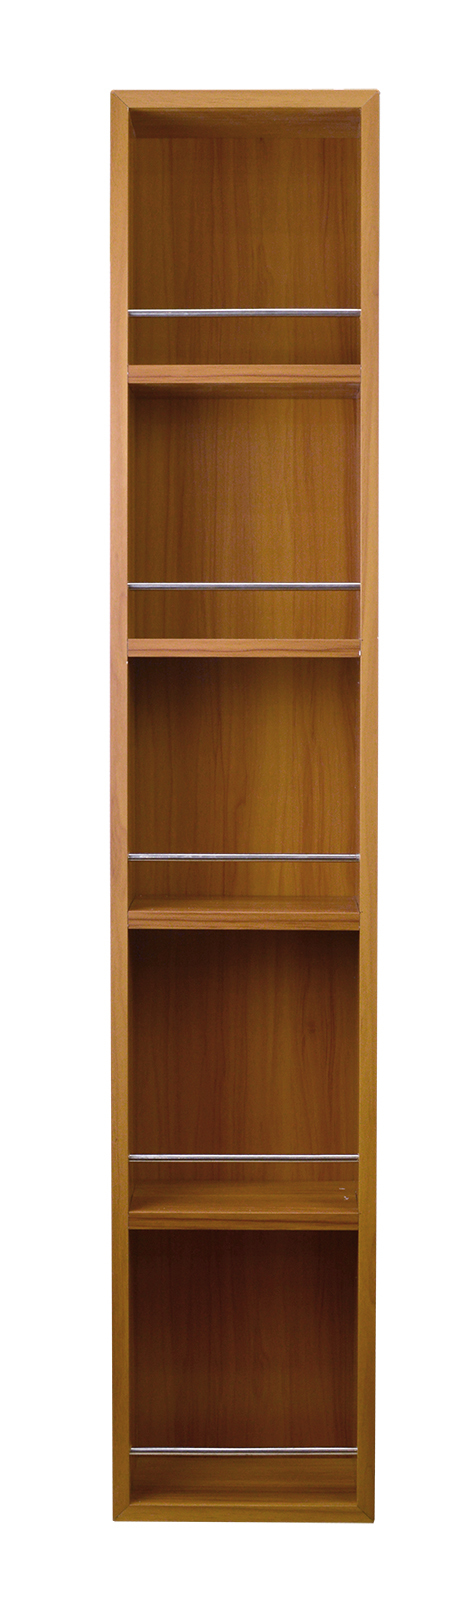 side cabinet JR 3750 smallfile.jpg